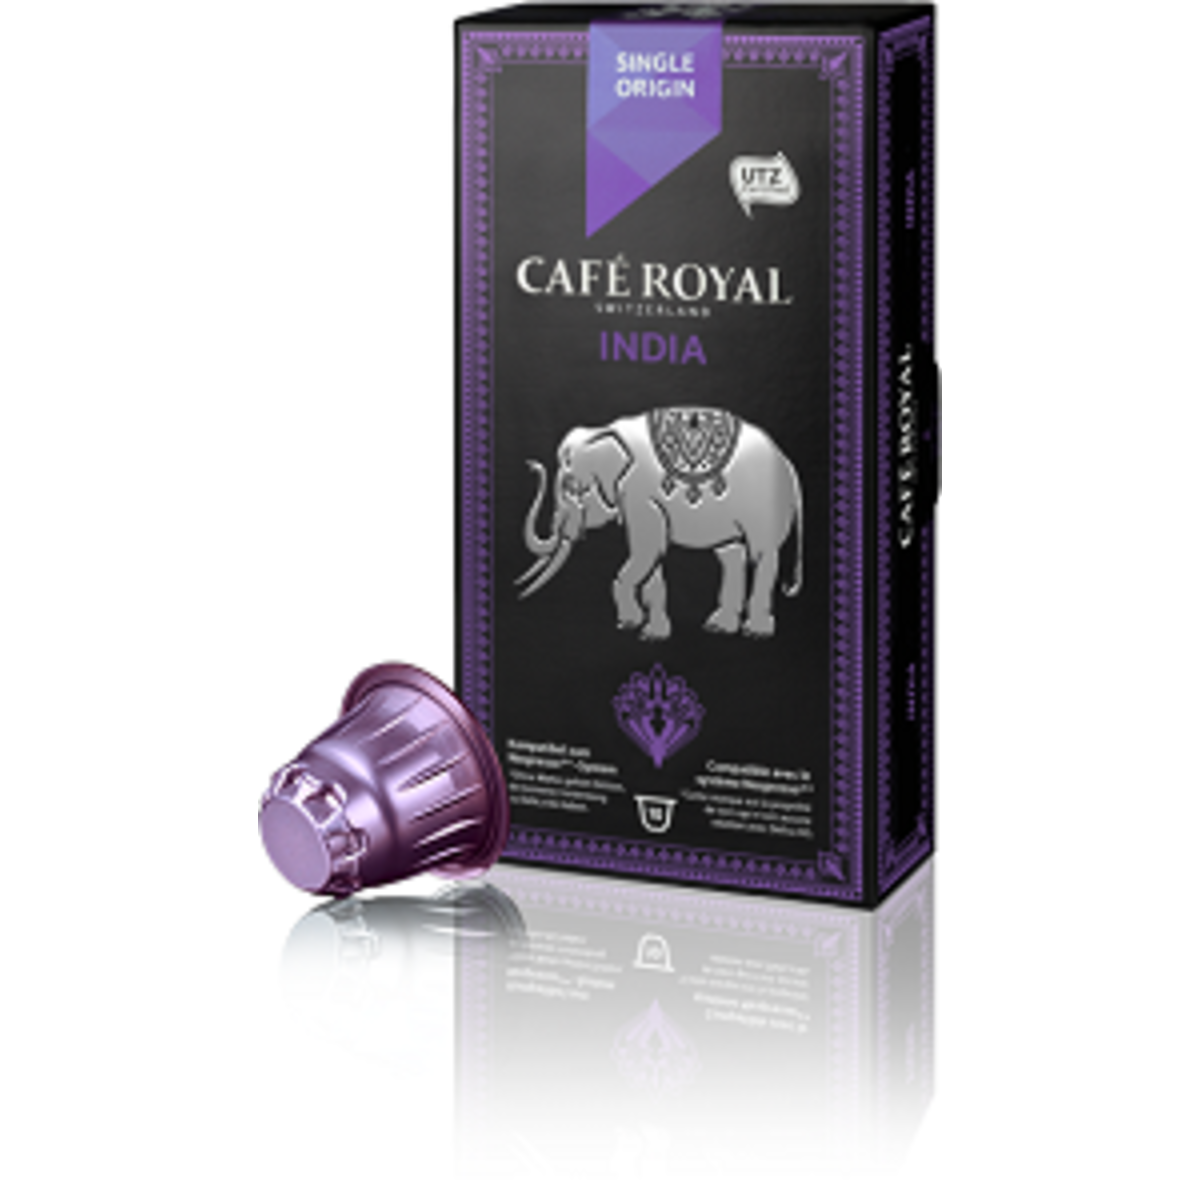 Café Royal India-  Nespresso съвместими капсули